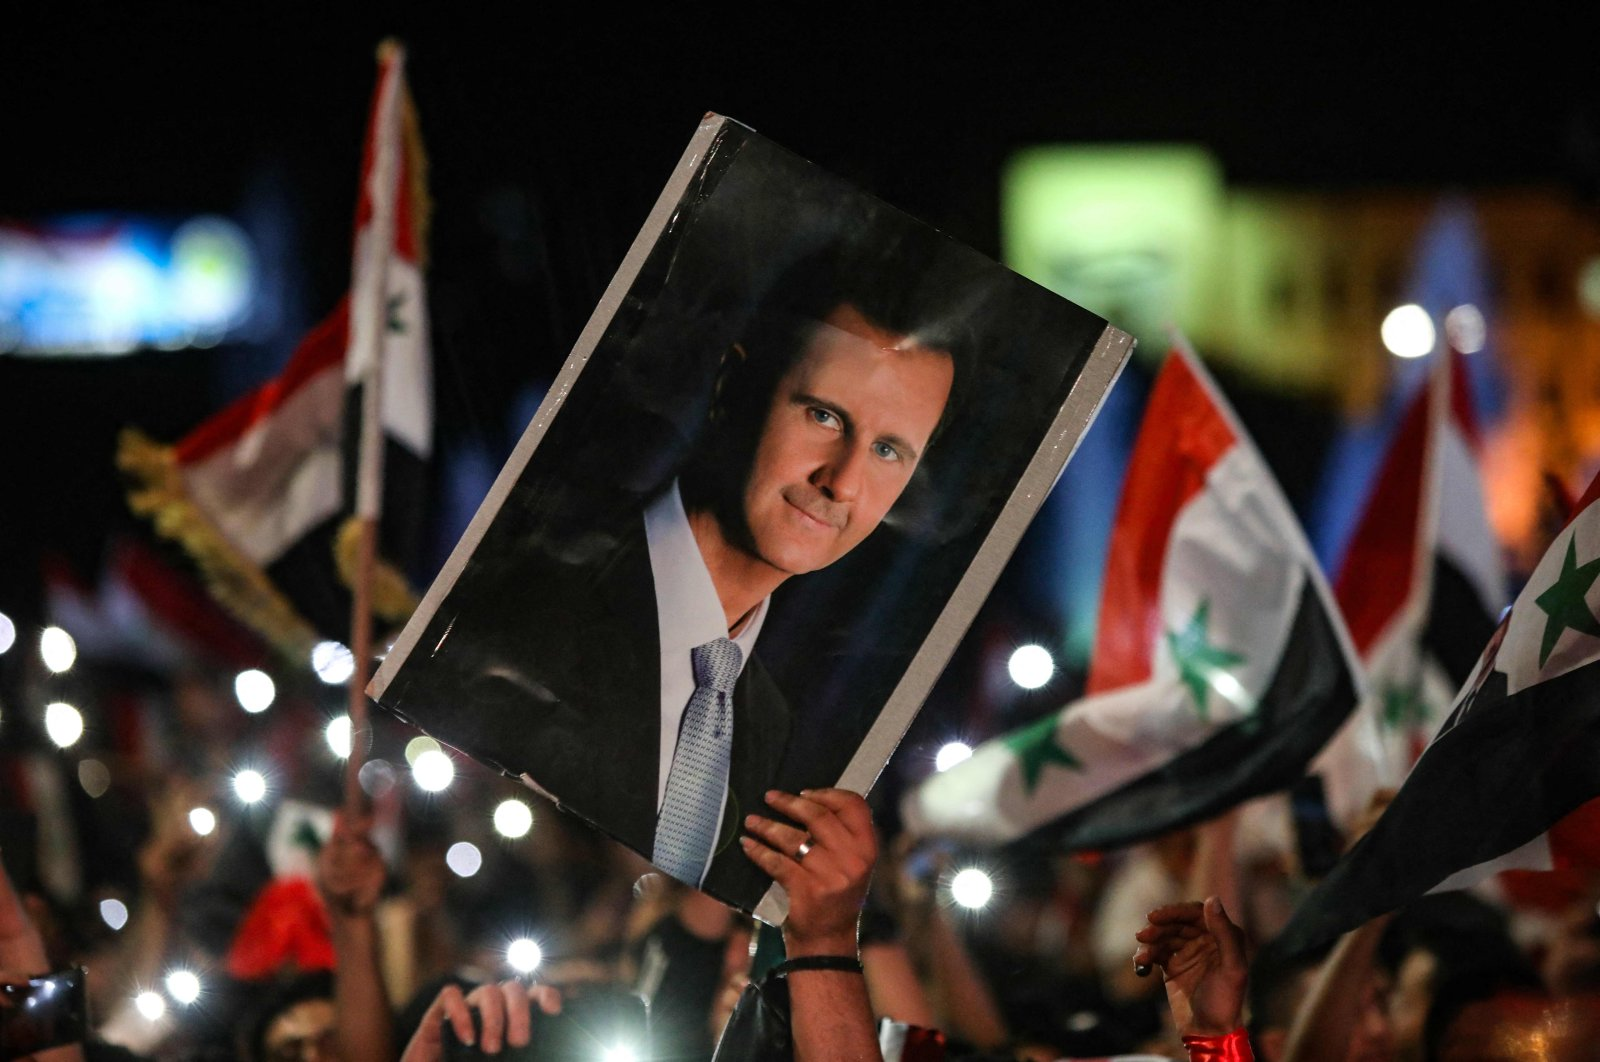 Syrians wave national flags and carry a portrait of Bashar Assad as they celebrate the result of the presidential election, Damascus, Syria, May 27, 2021. (AFP Photo)